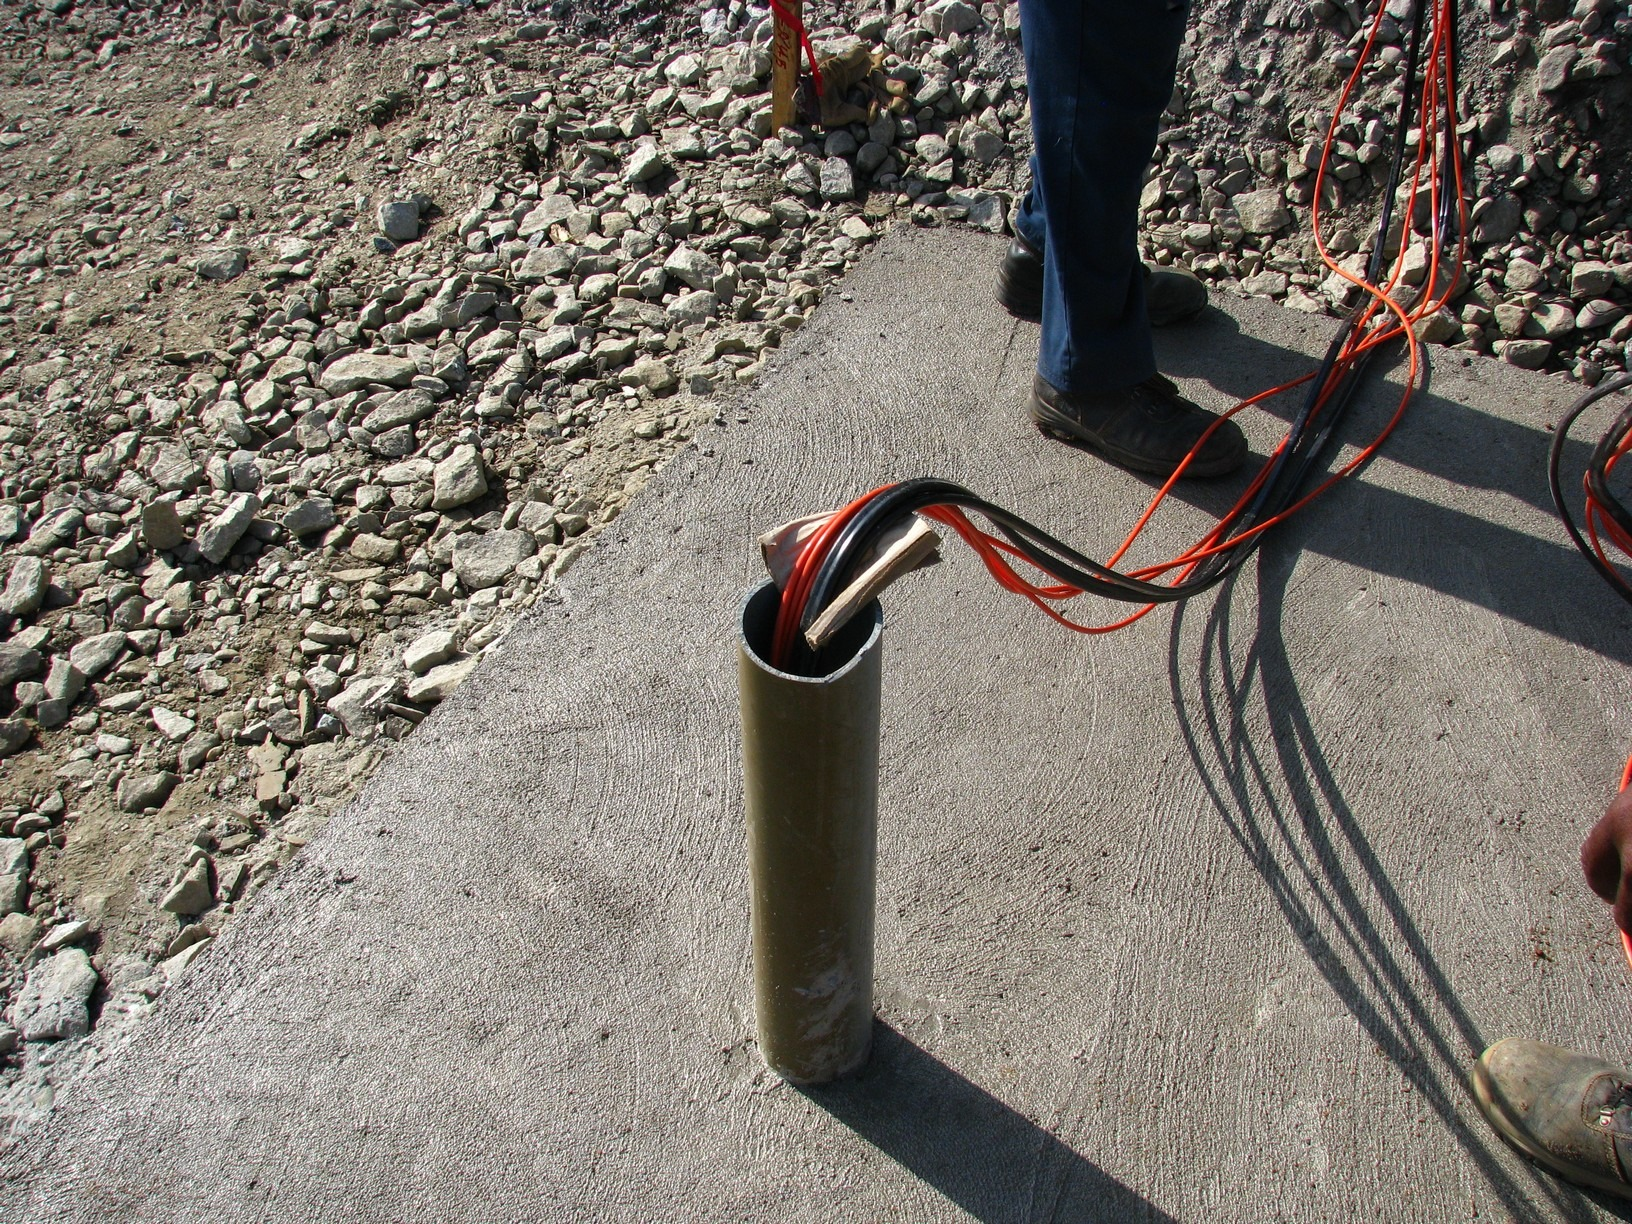 Routing of vibrating wire cables from VWLSS-200 plates once installed